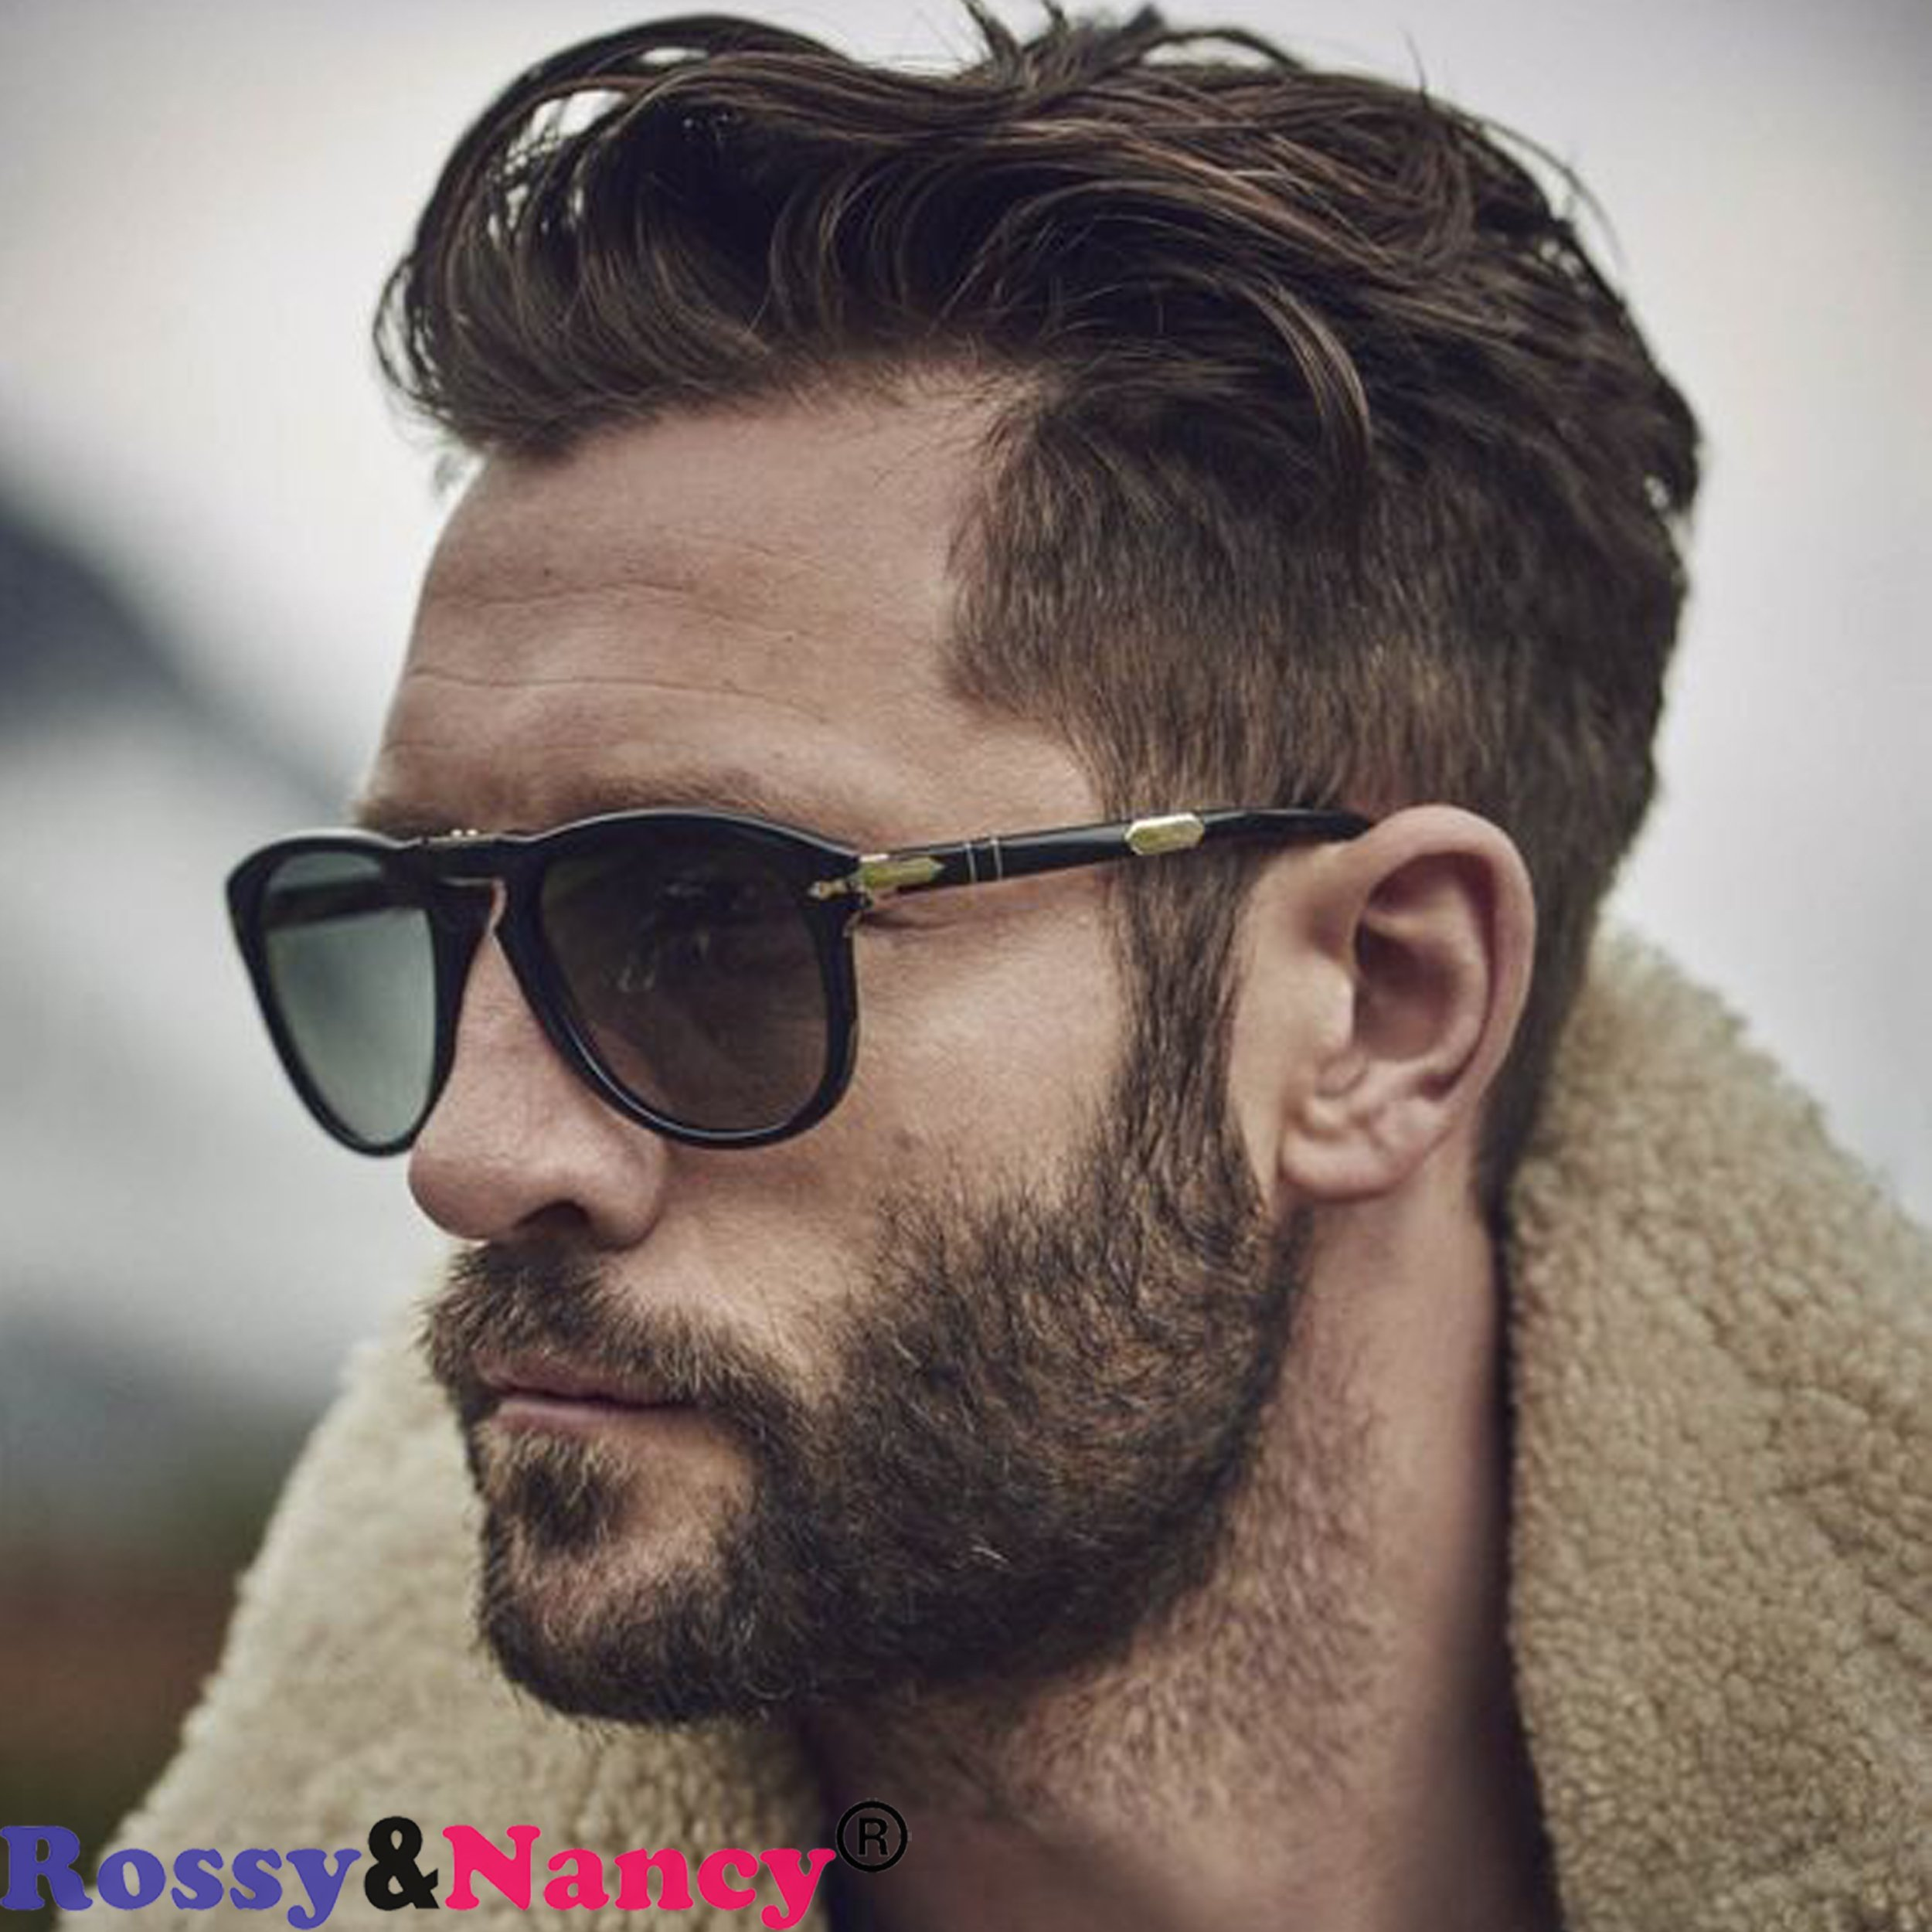 Rossy&Nancy Men Hairpiece Real French Lace Human Hair Replacement for Men Wig Thin Skin Men's Toupee #4 Color